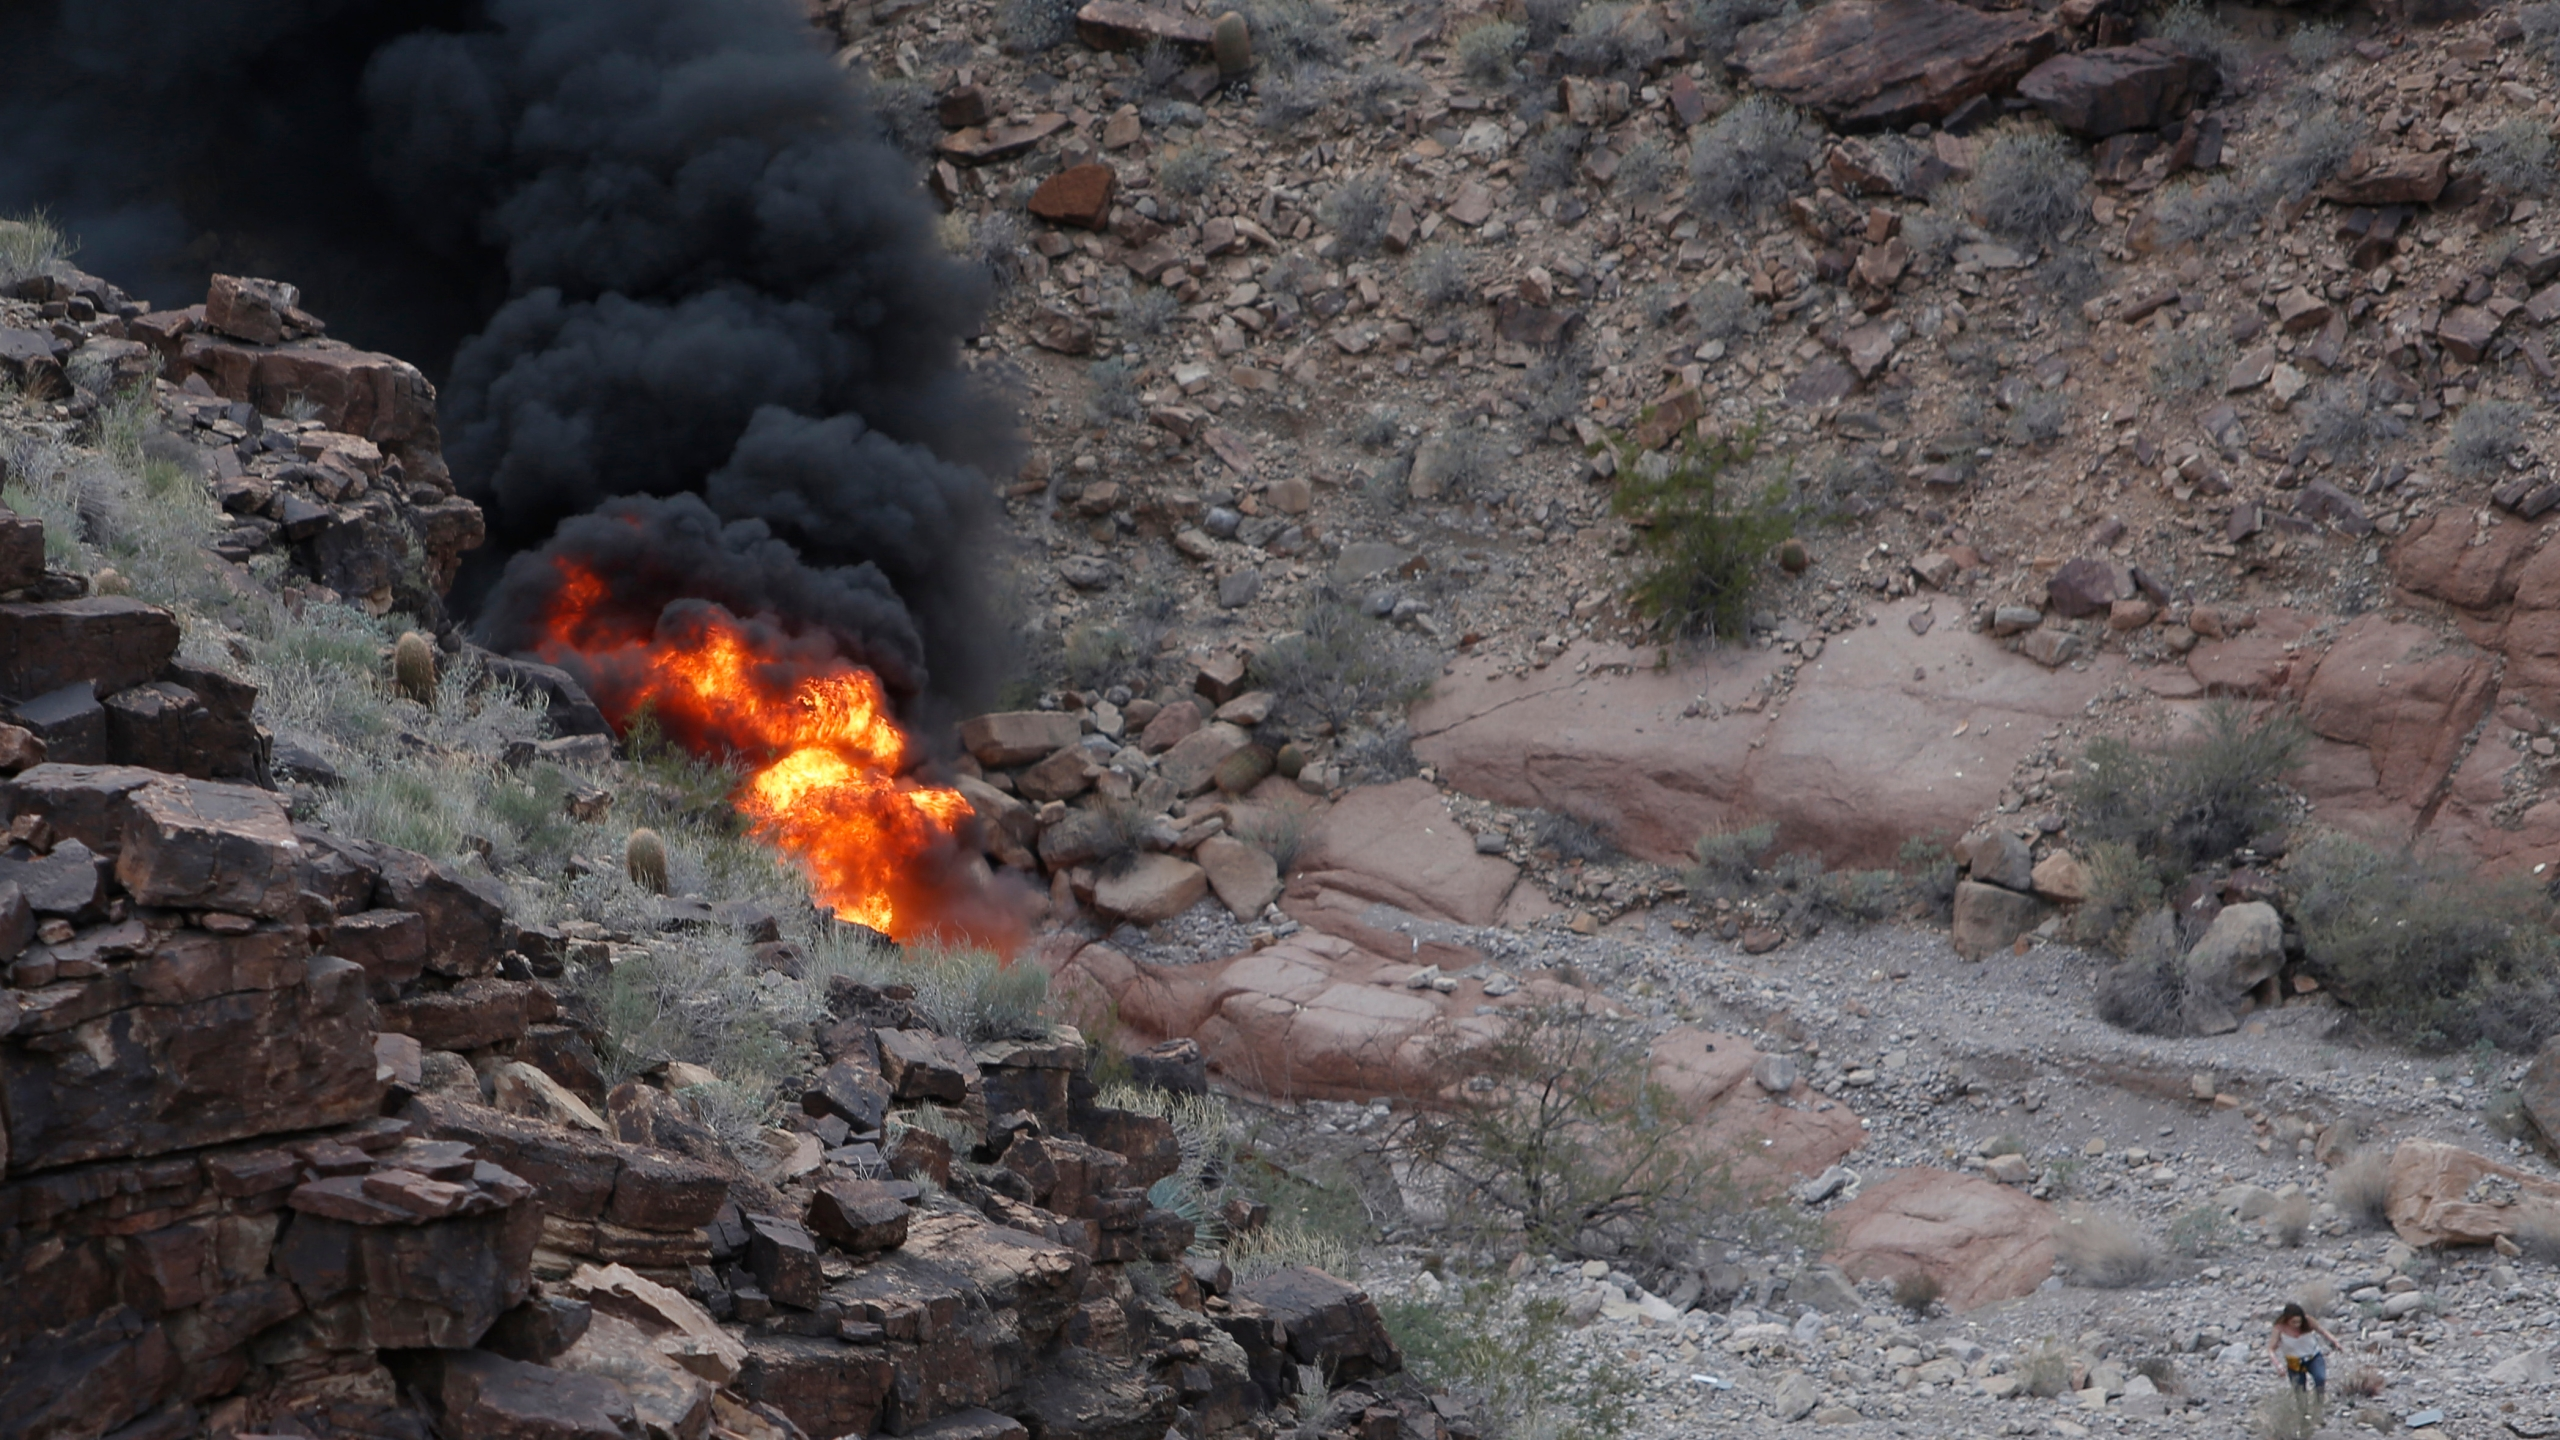 Grand_Canyon_Helicopter_Crash_43199-159532.jpg74512044